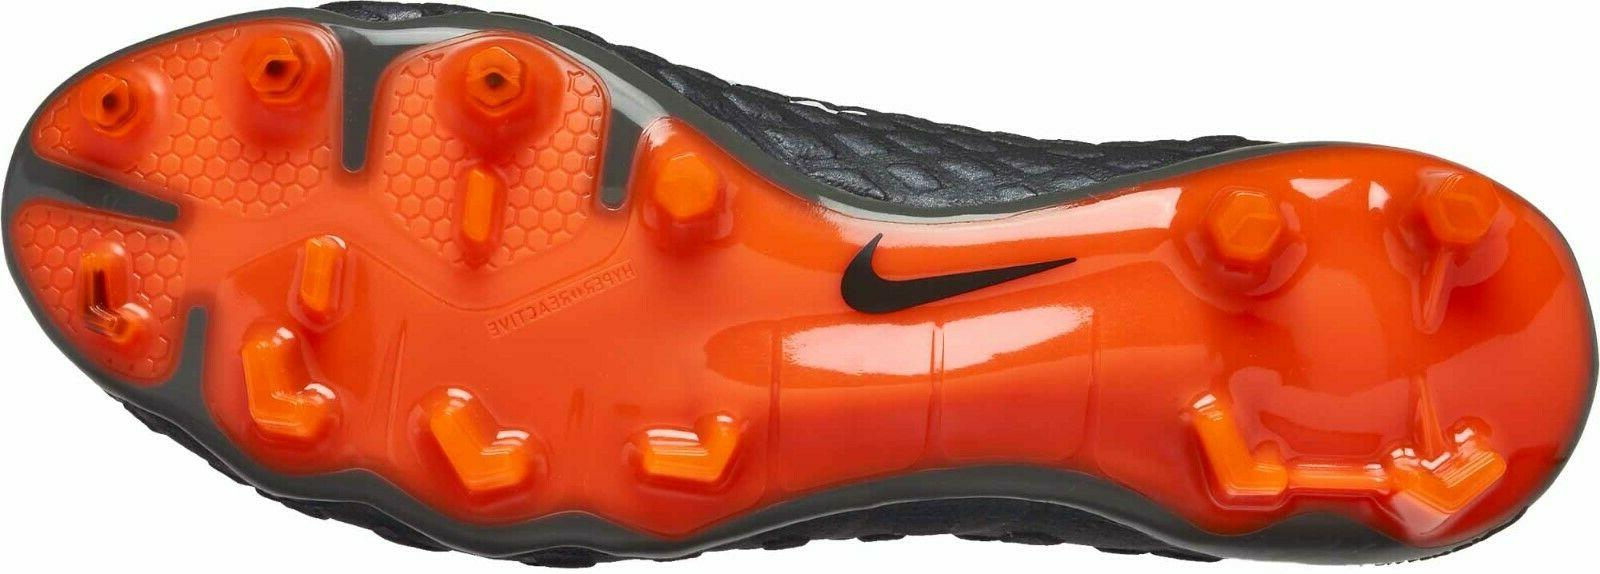 Nike Phantom III 3 Elite Soccer US Size